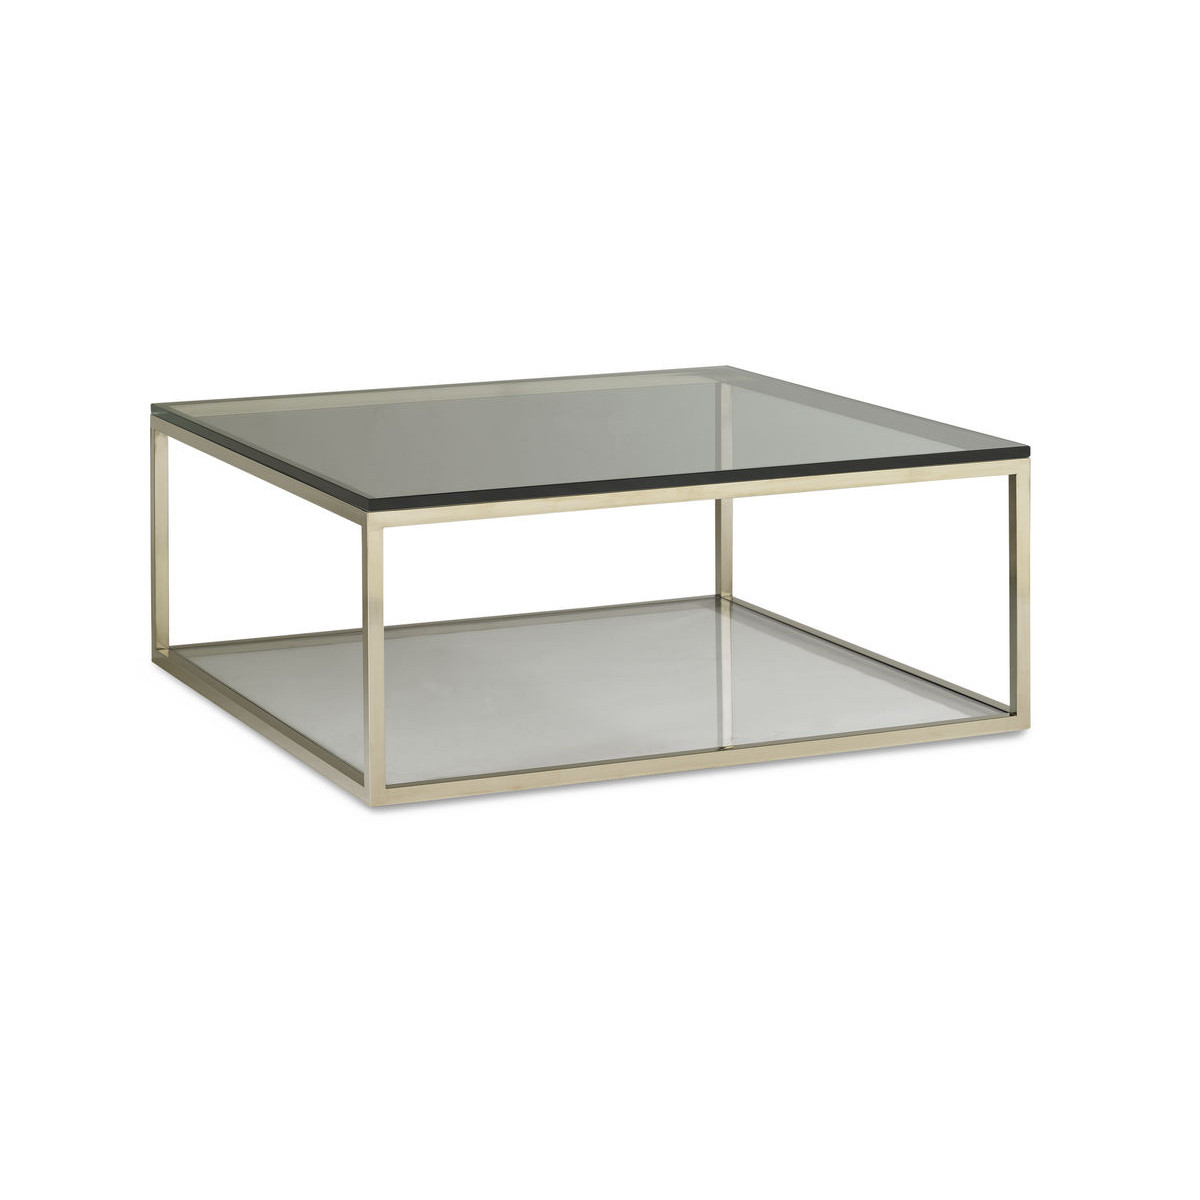 Square Glass Coffee Table I Simply Wont Ever Be Able To Look At It In The Same Way Again (Image 3 of 10)